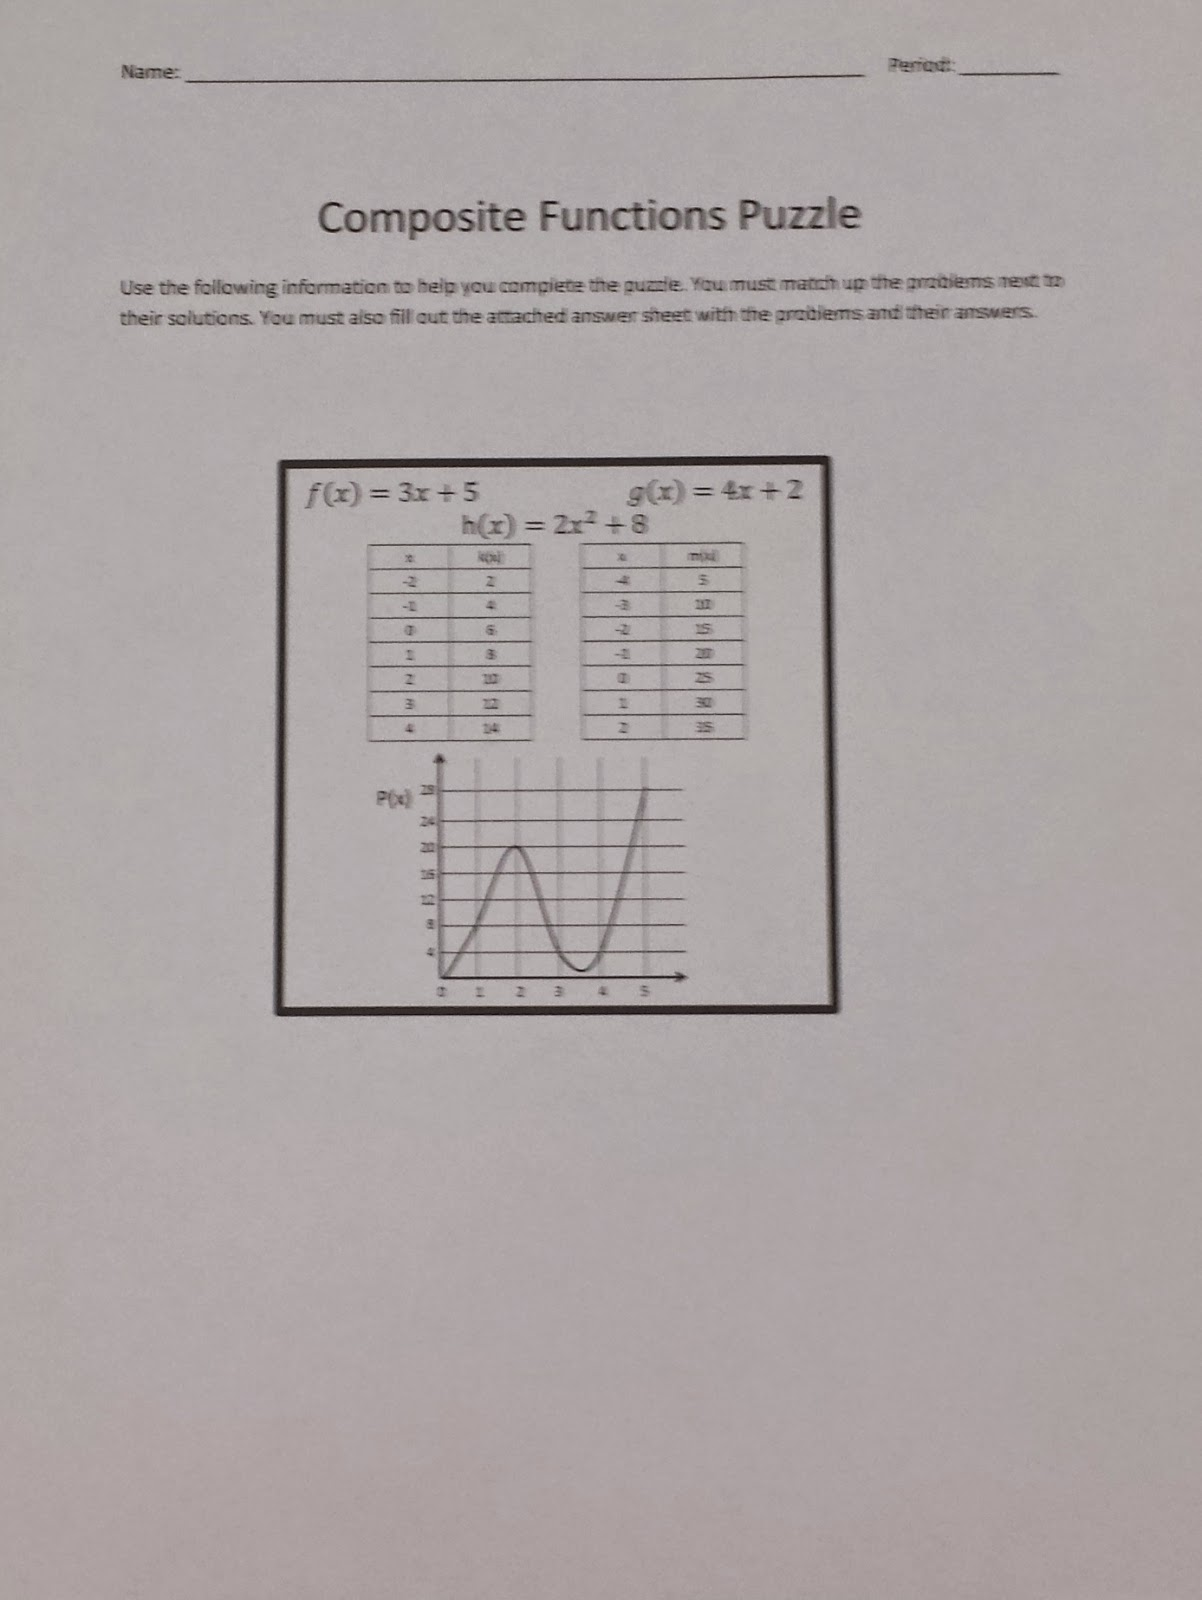 worksheet Composite Functions Worksheet With Answers ms rodriguezs precal class 1092014 composite functions puzzle pg 1